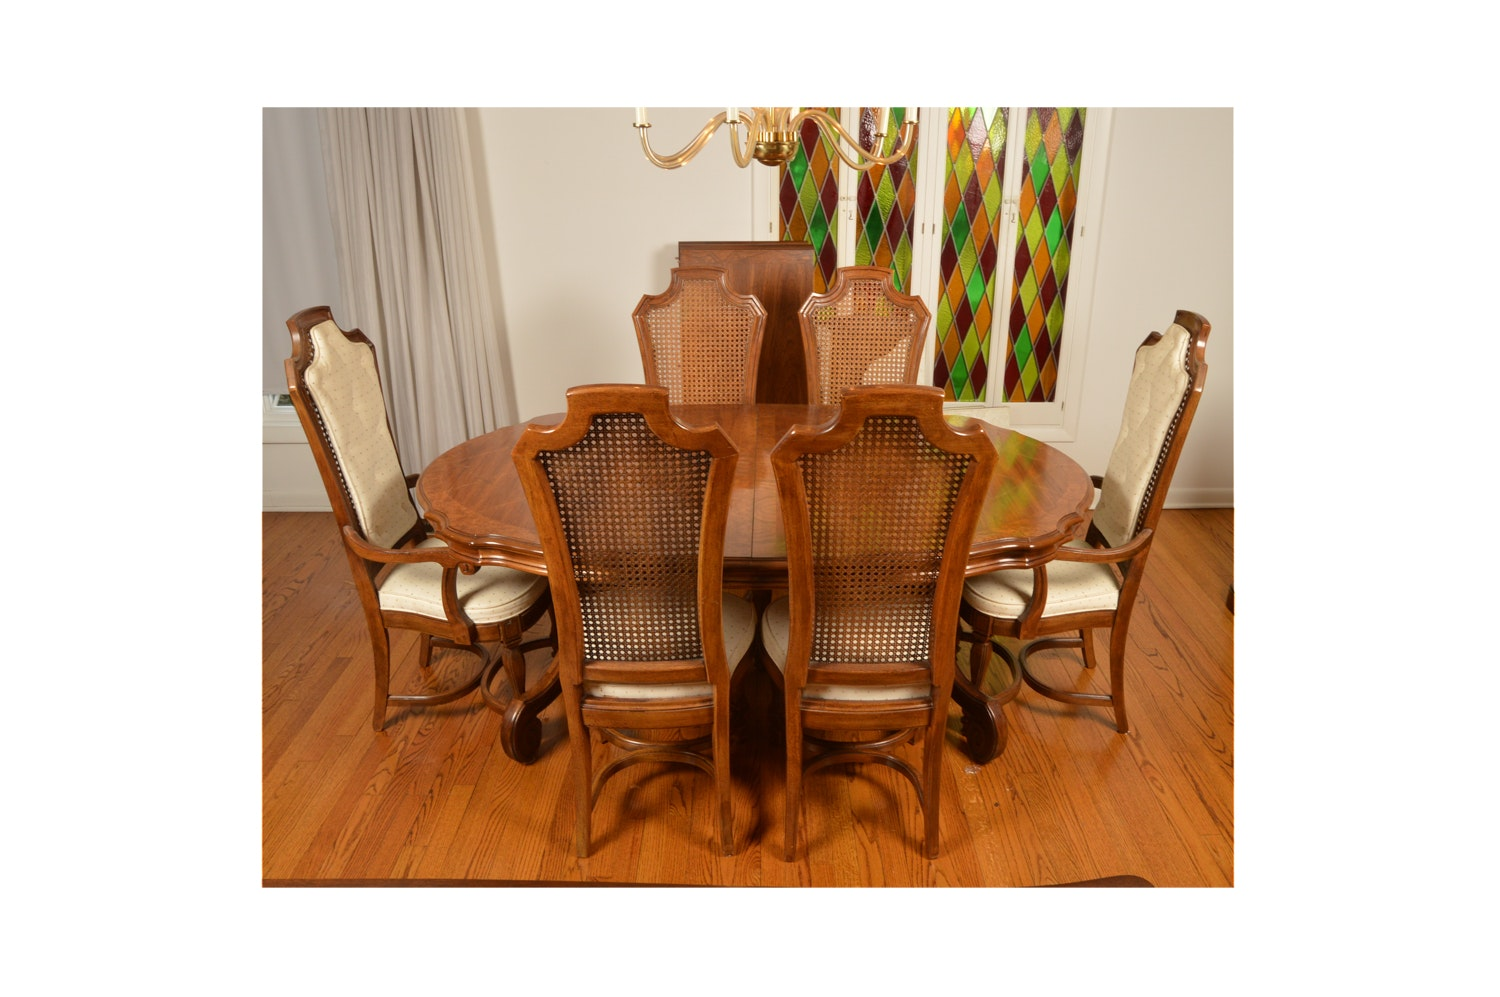 Italian Or Mediterranean Style Dining Table And Chairs ...